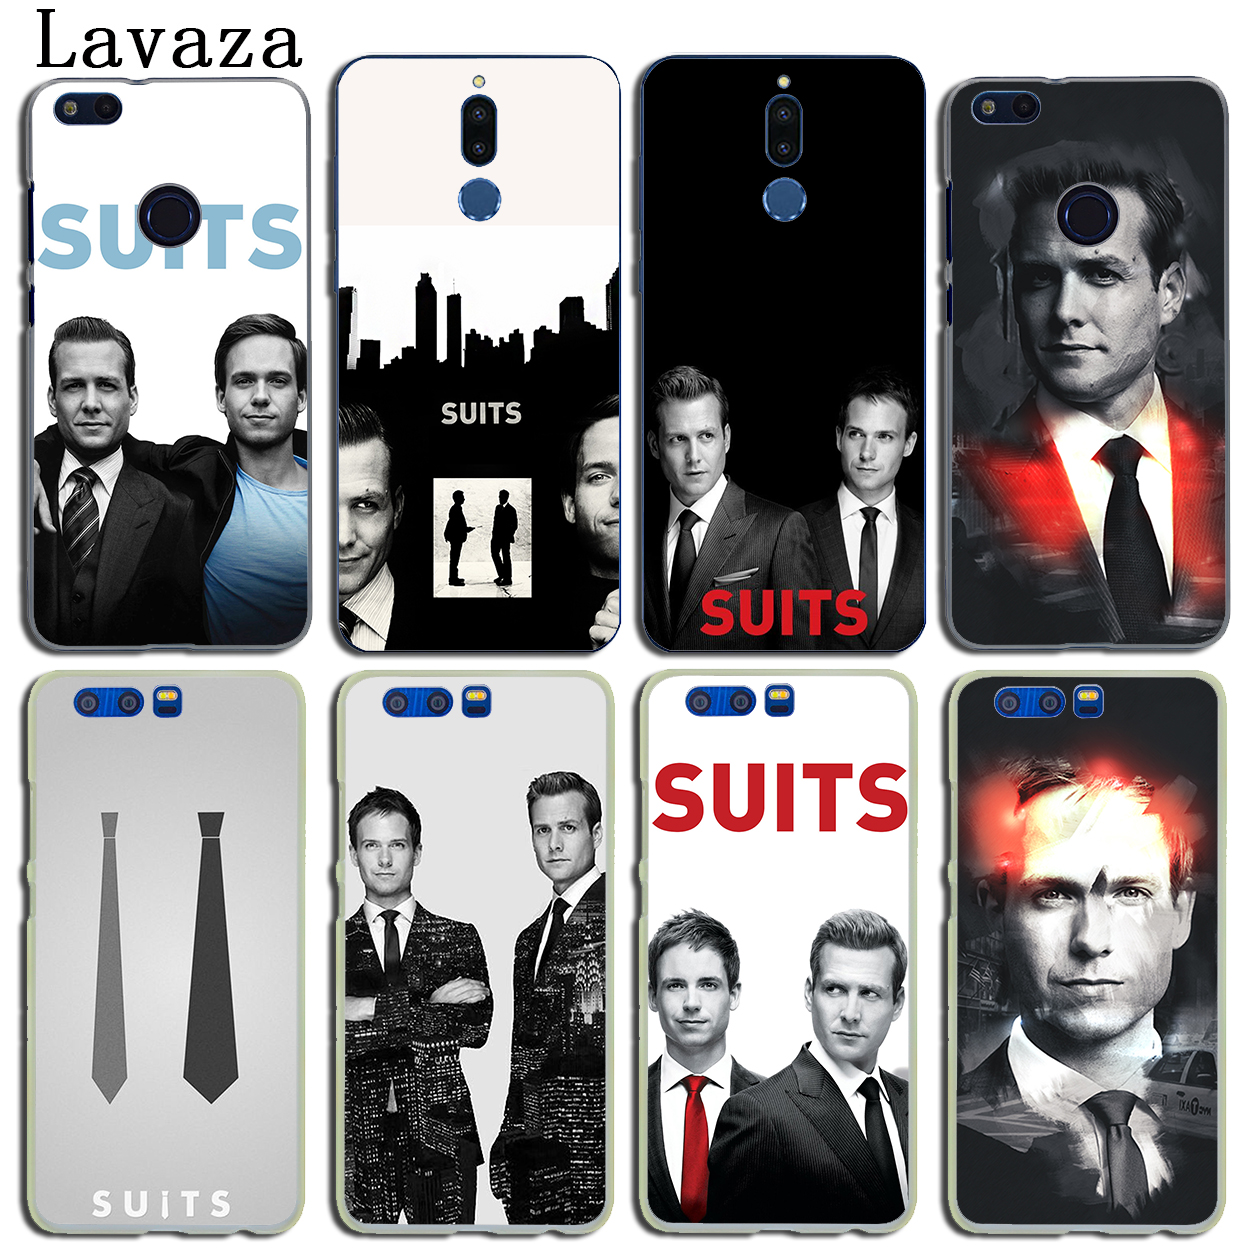 Lavaza Suits TV Show Hard Phone Case for Huawei Y6 Y5 Y3 II Y7 2017 Nova 2 Plus 2S 2i &  ...